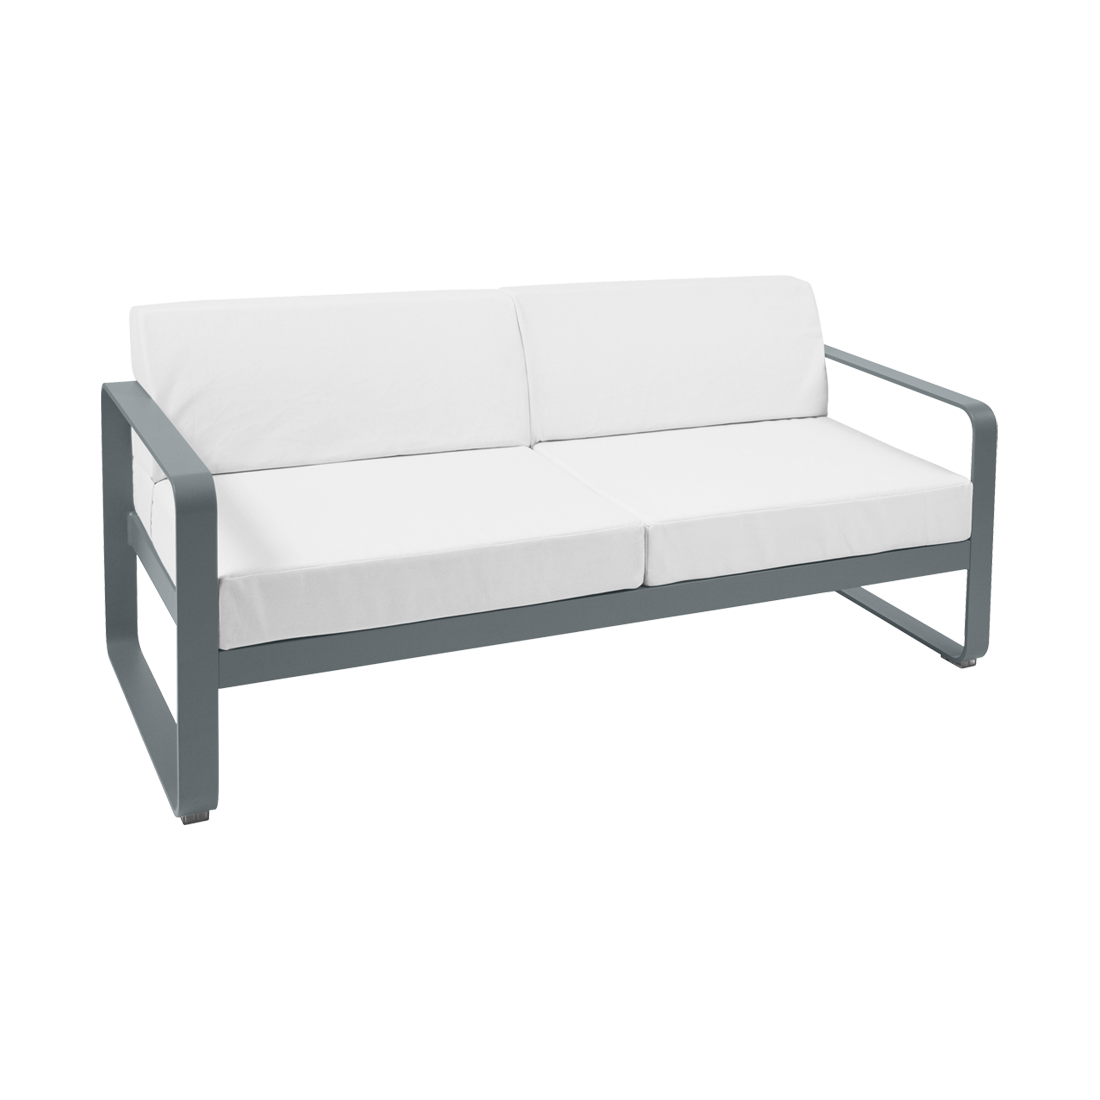 2 Seater Sofa   Off White Cushions